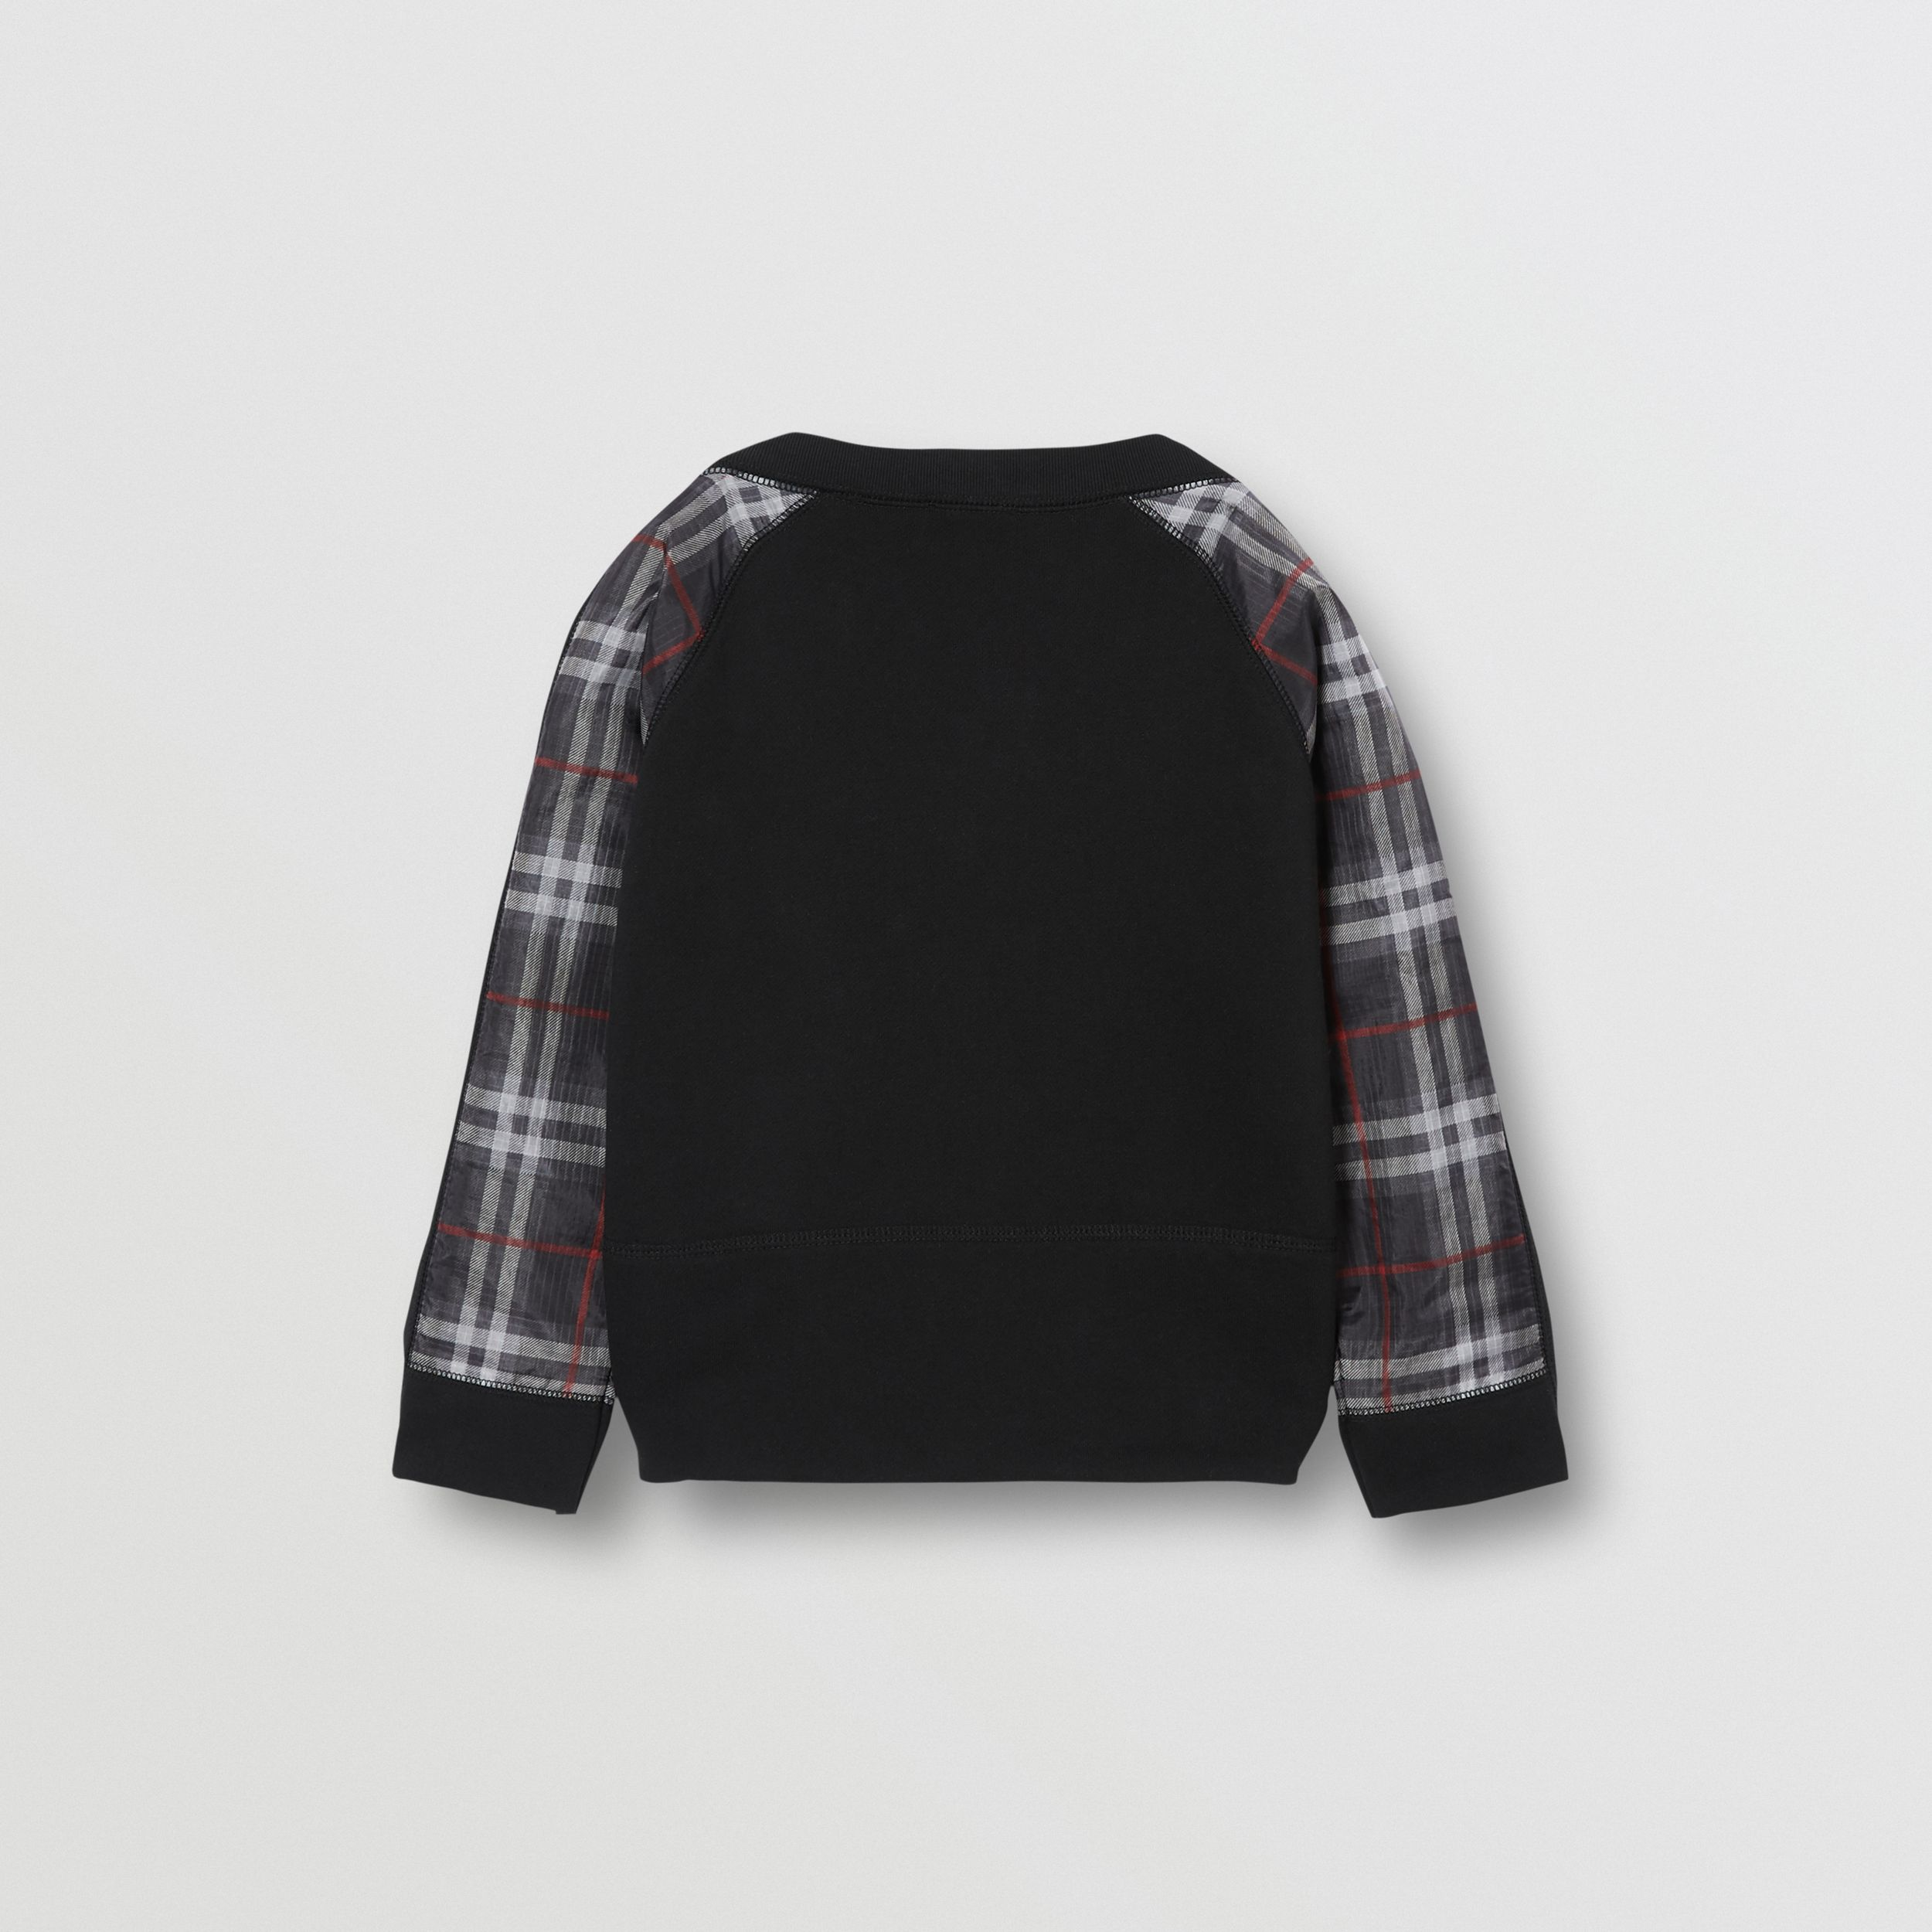 Vintage Check Detail Logo Print Cotton Sweatshirt in Black | Burberry - 4